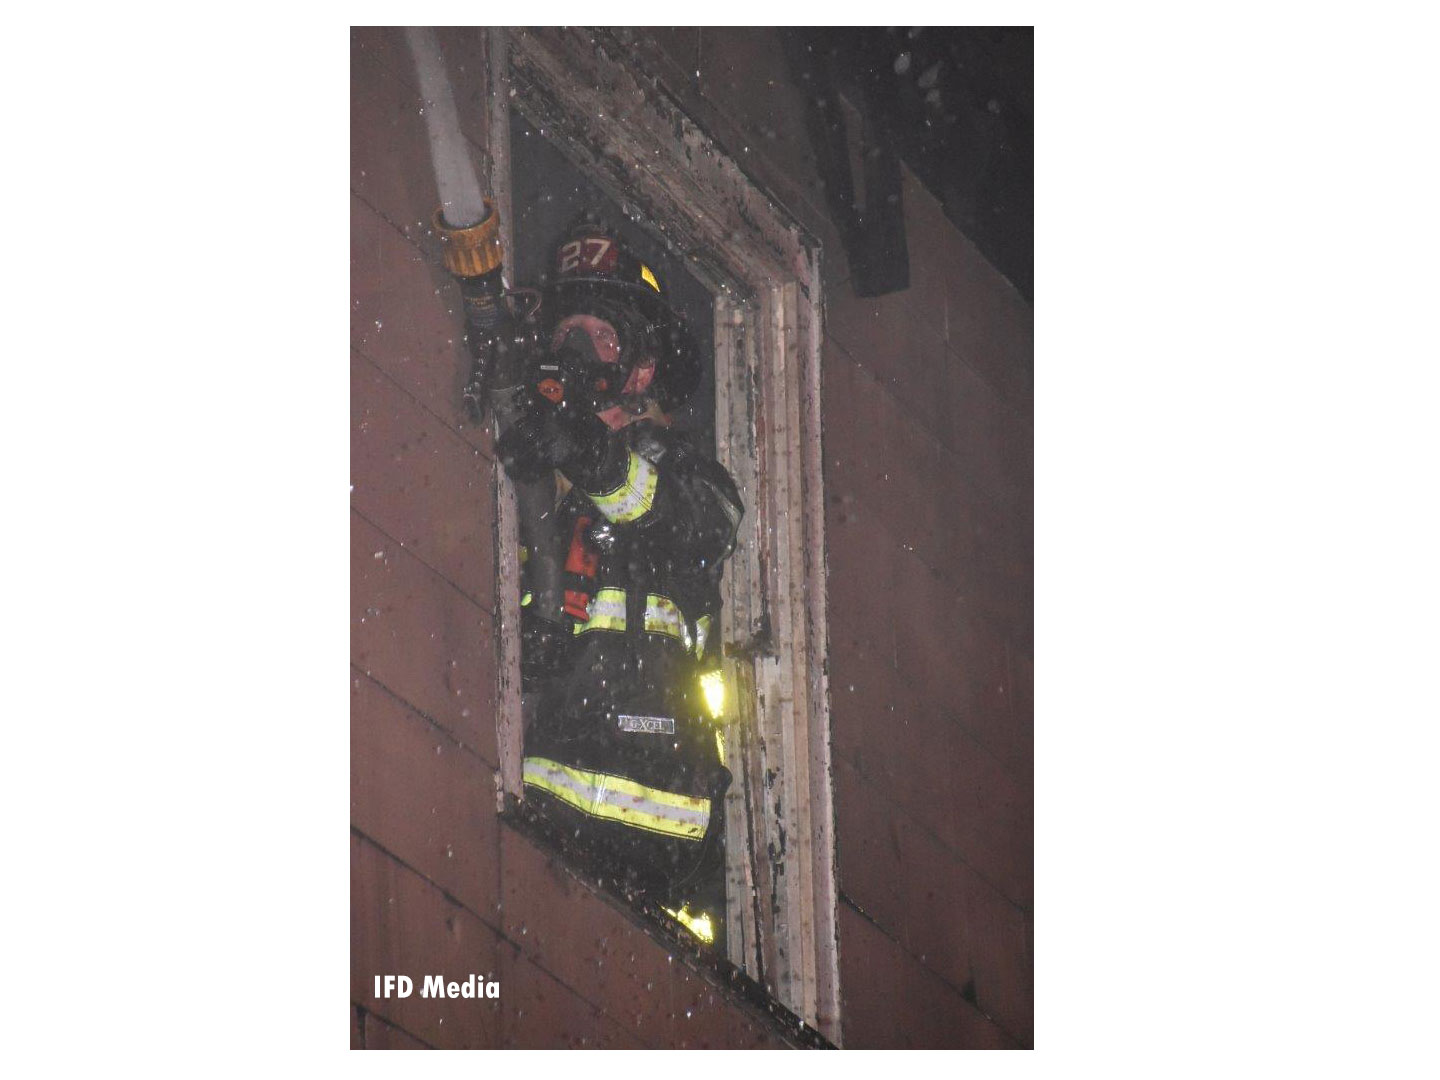 Firefighter with a nozzle in the window